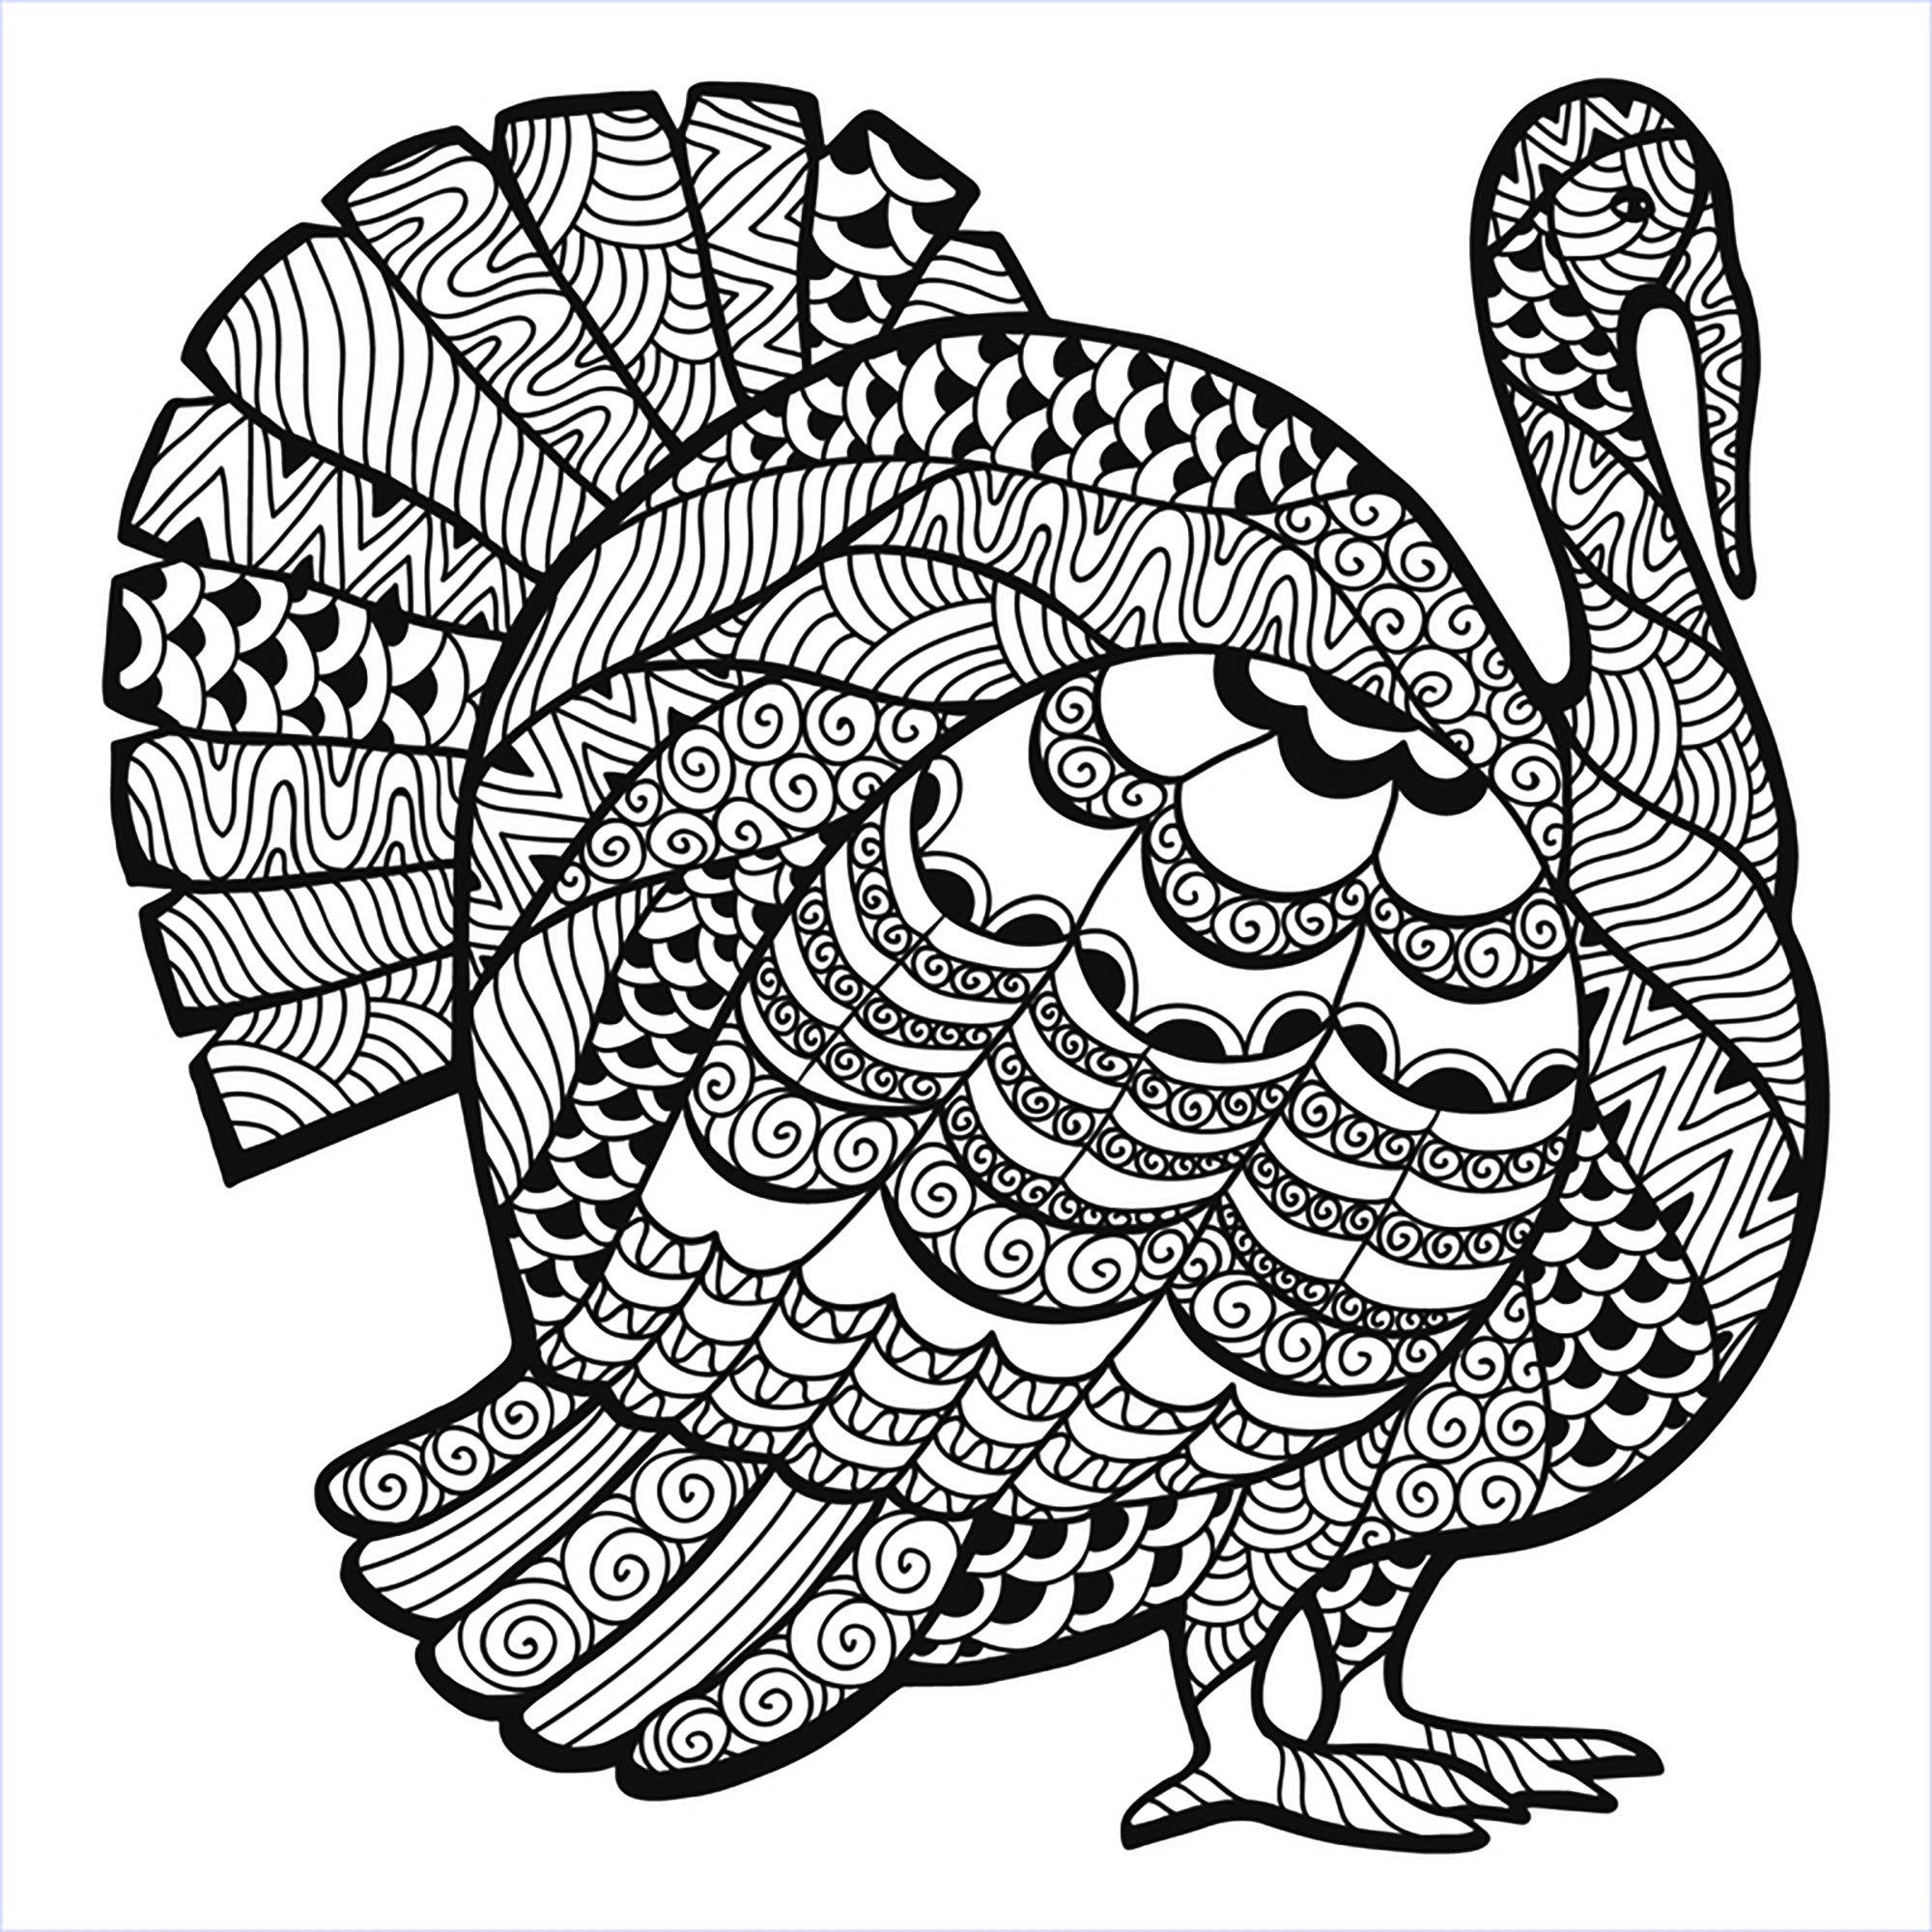 Thanksgiving zentangle turkey by elena medvedeva Thanksgiving